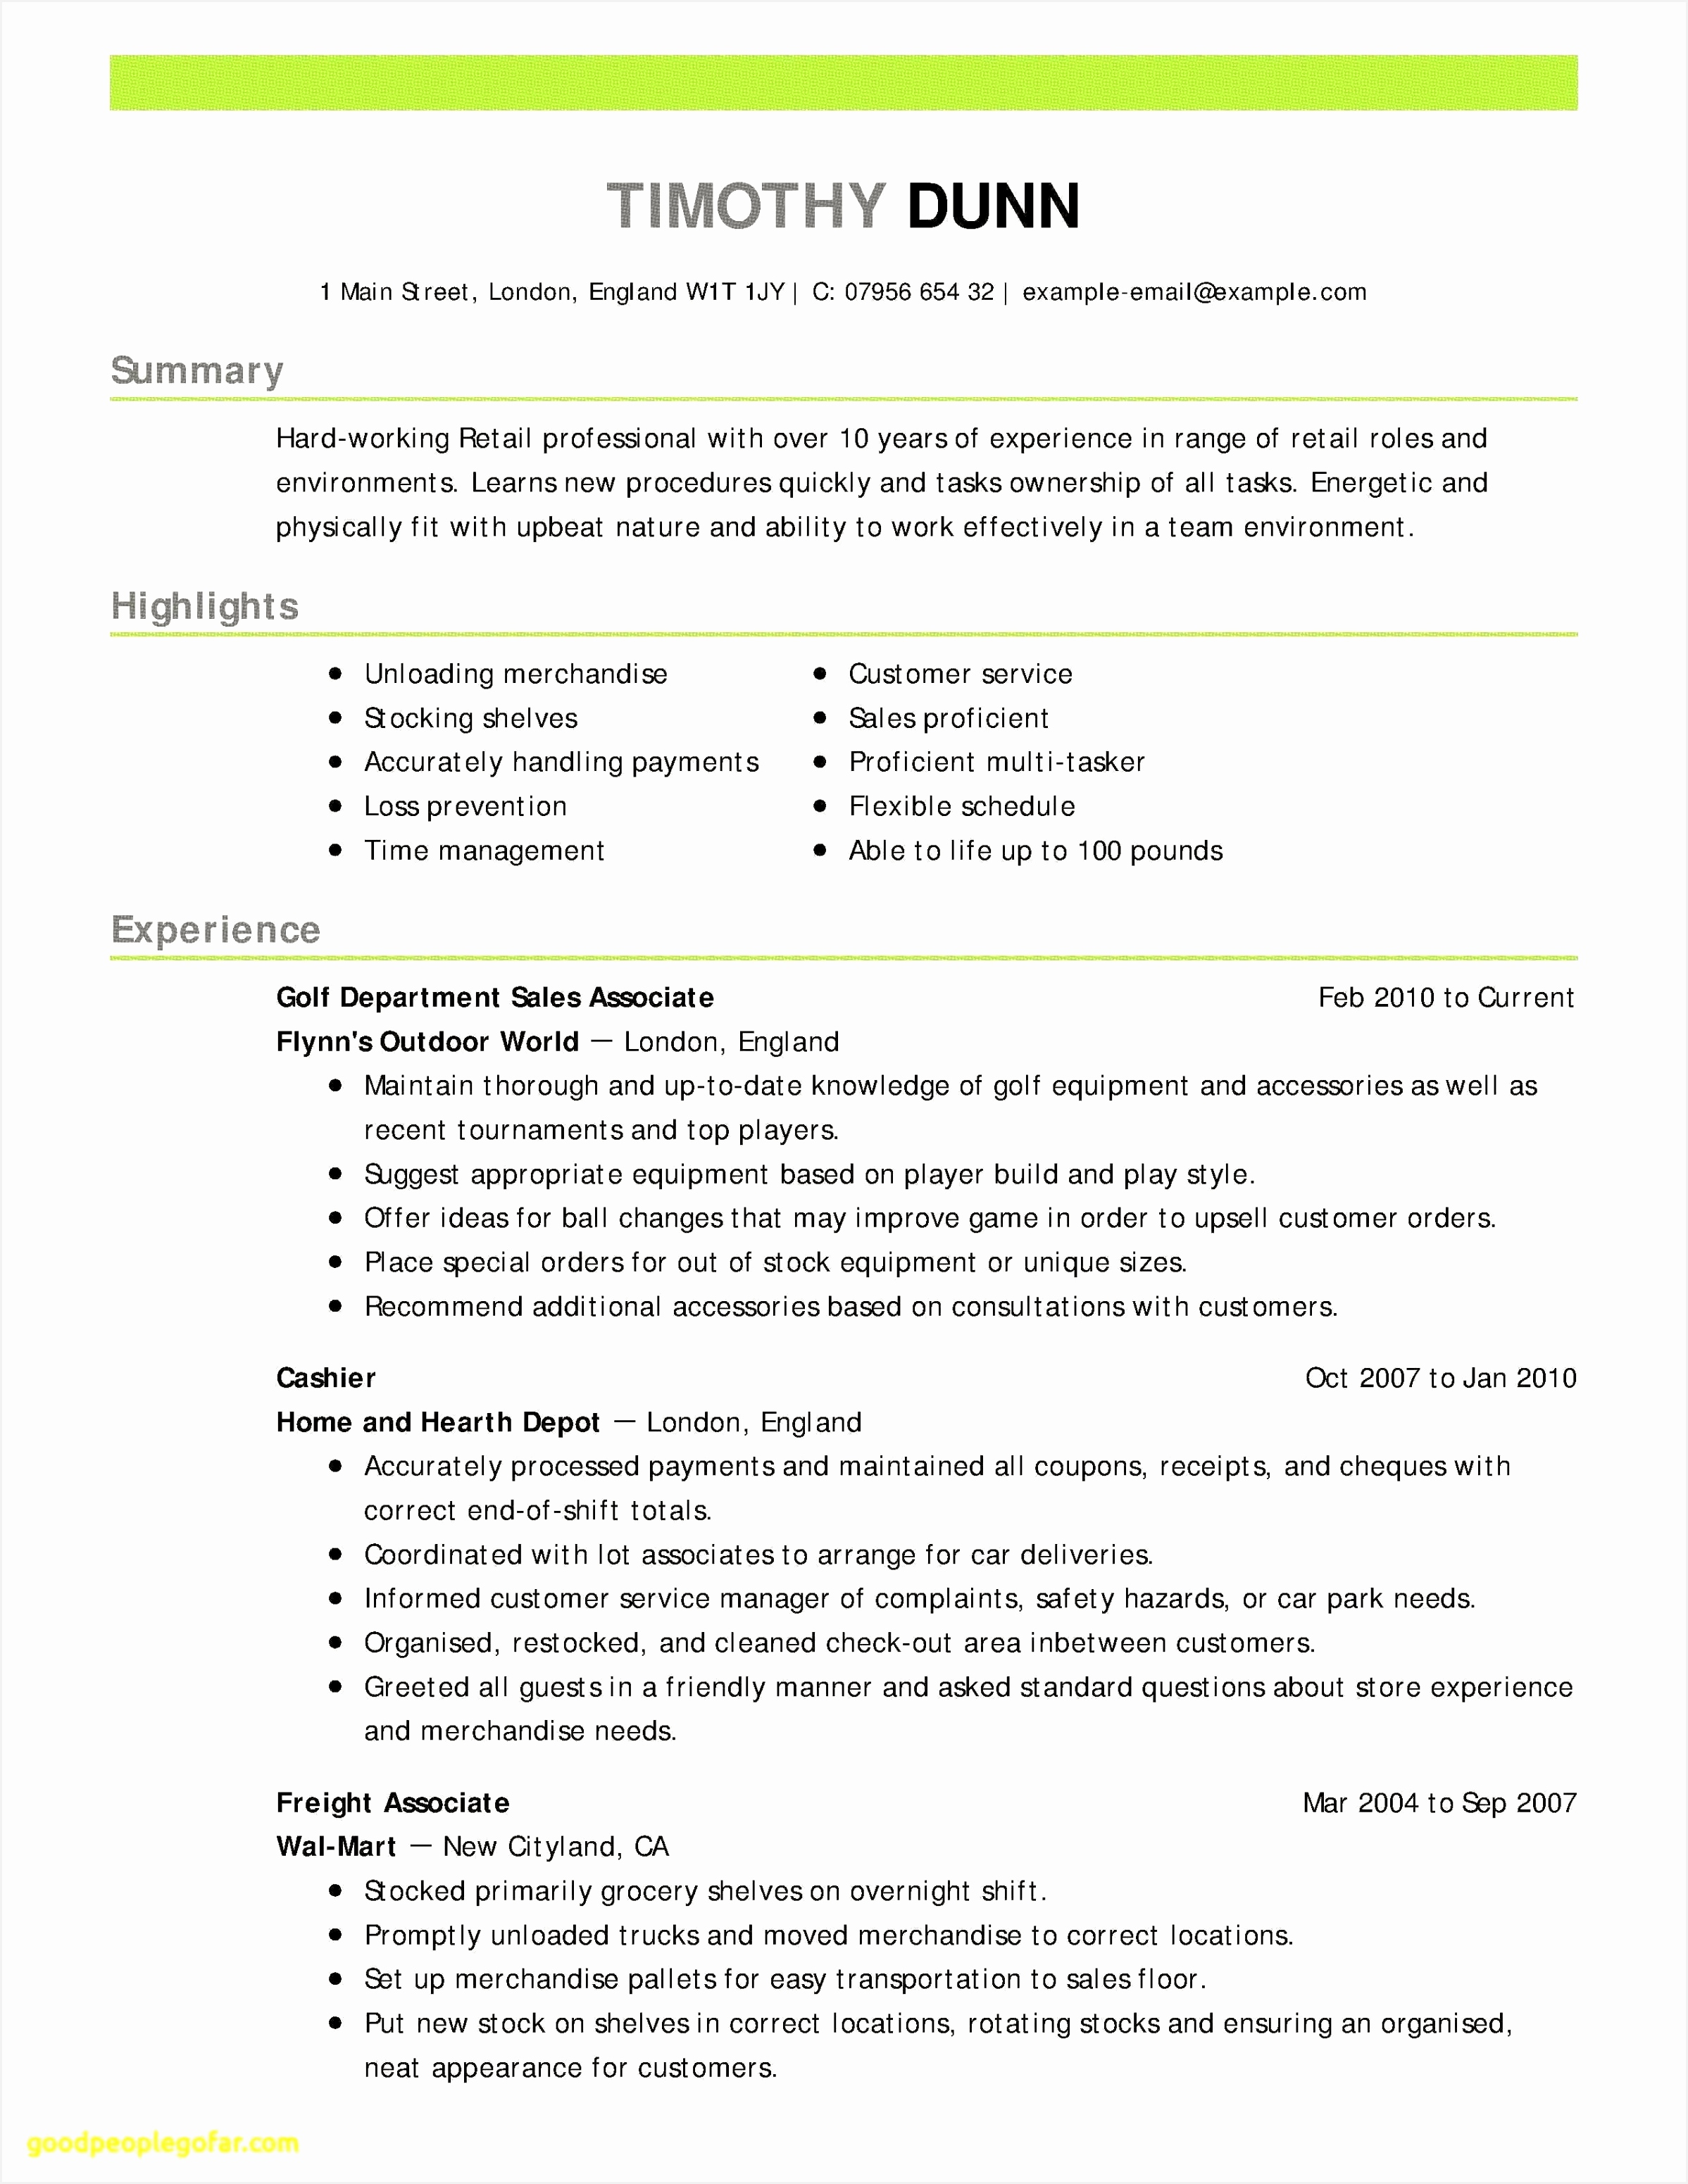 Resume Bullet Points Customer Service Valid Resume Format Samples Sample Resume Skills Fresh Resume Examples 0d 31022397xpekc